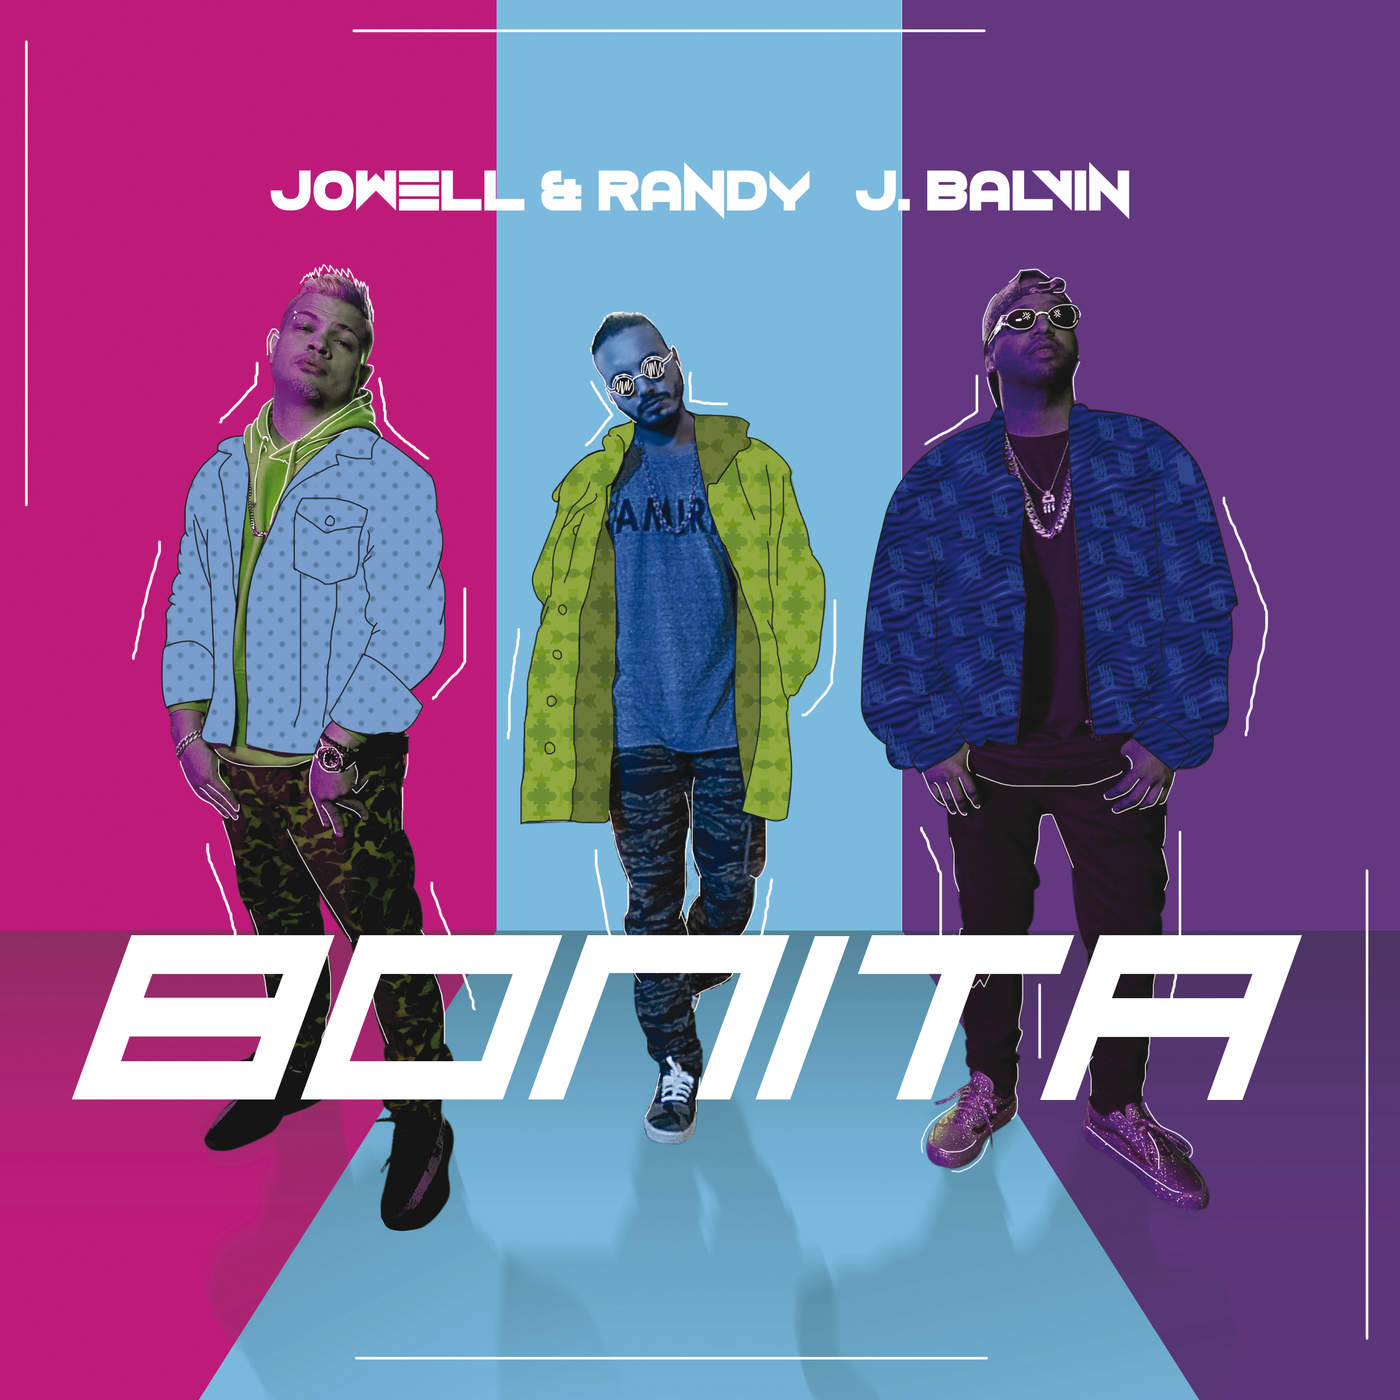 J Balvin & Jowell & Randy - Bonita - Single